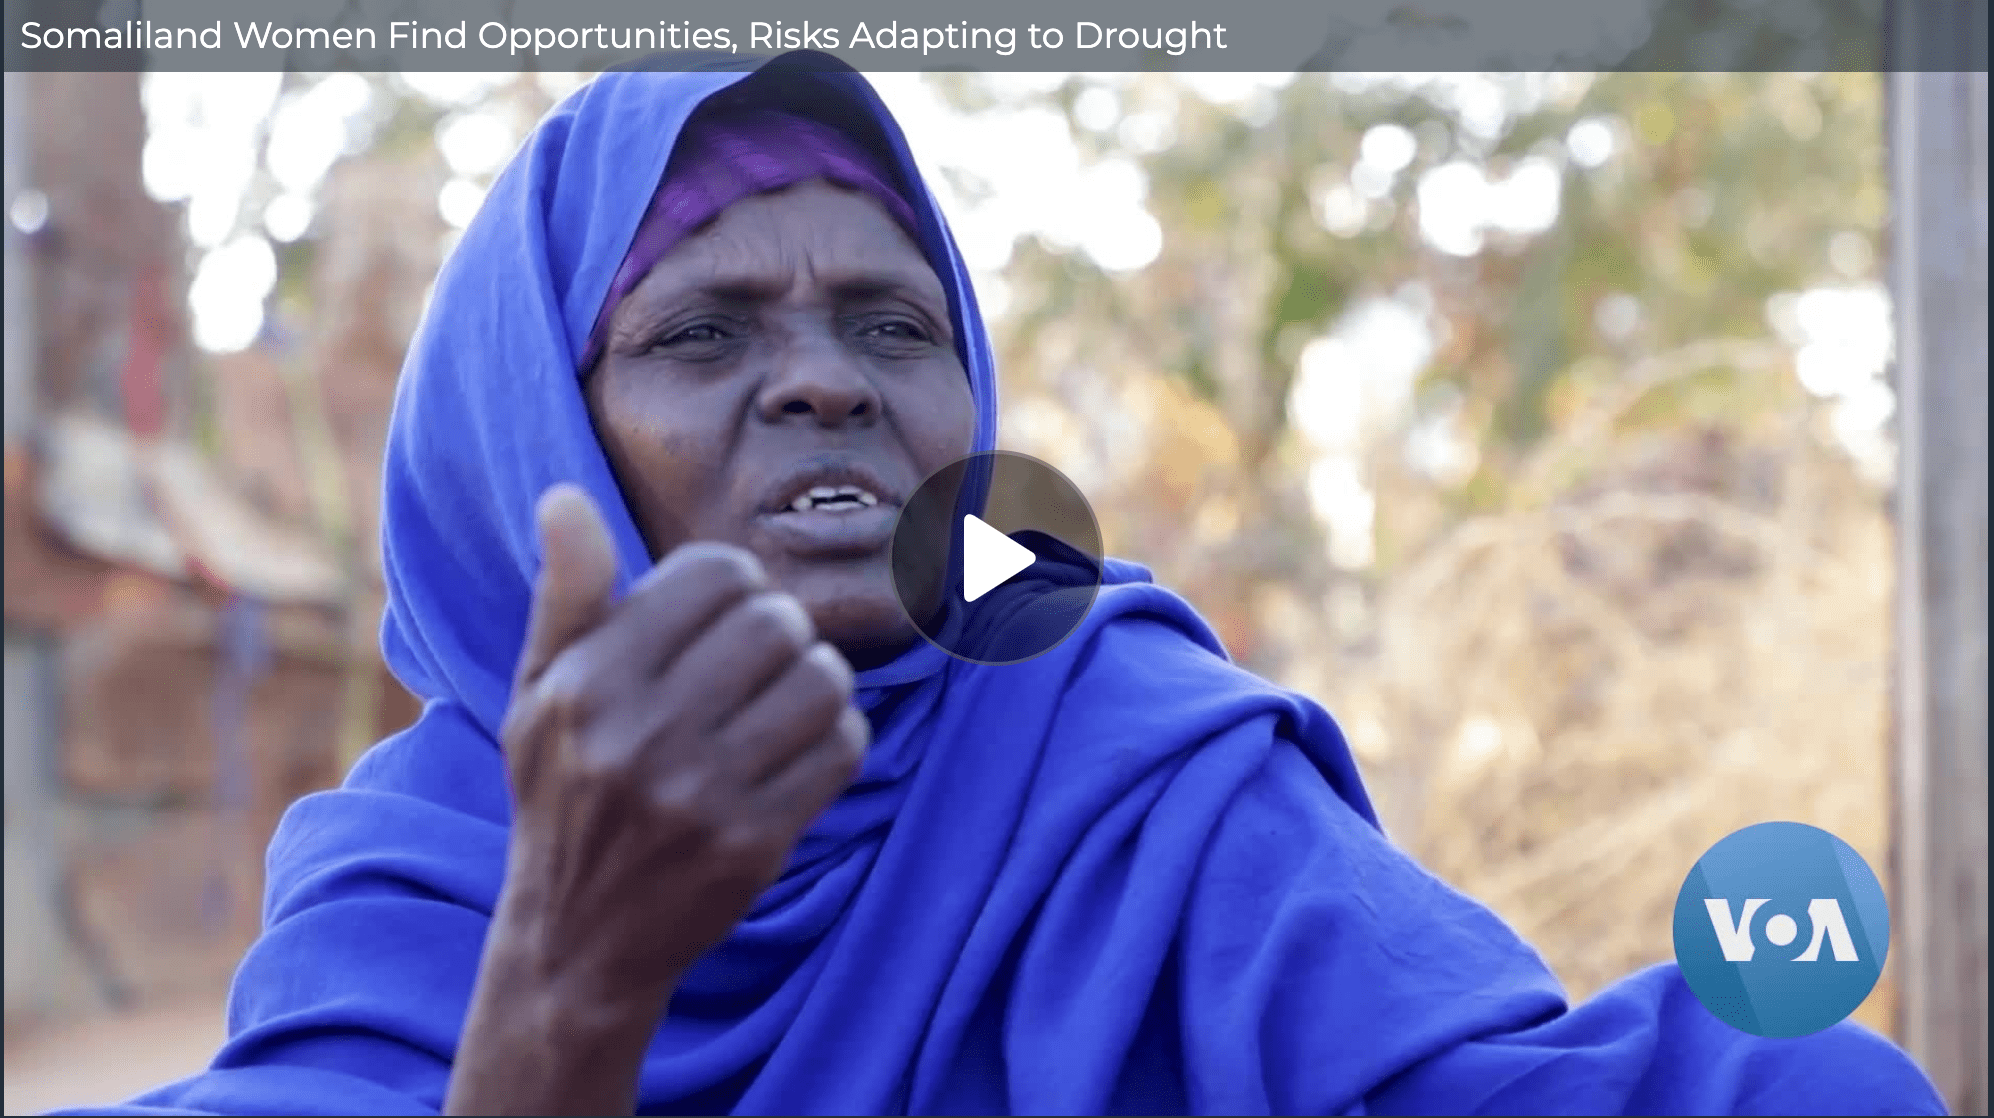 Somaliland Women Find Opportunities, Risks Adapting to Drought – Voice of America (image)